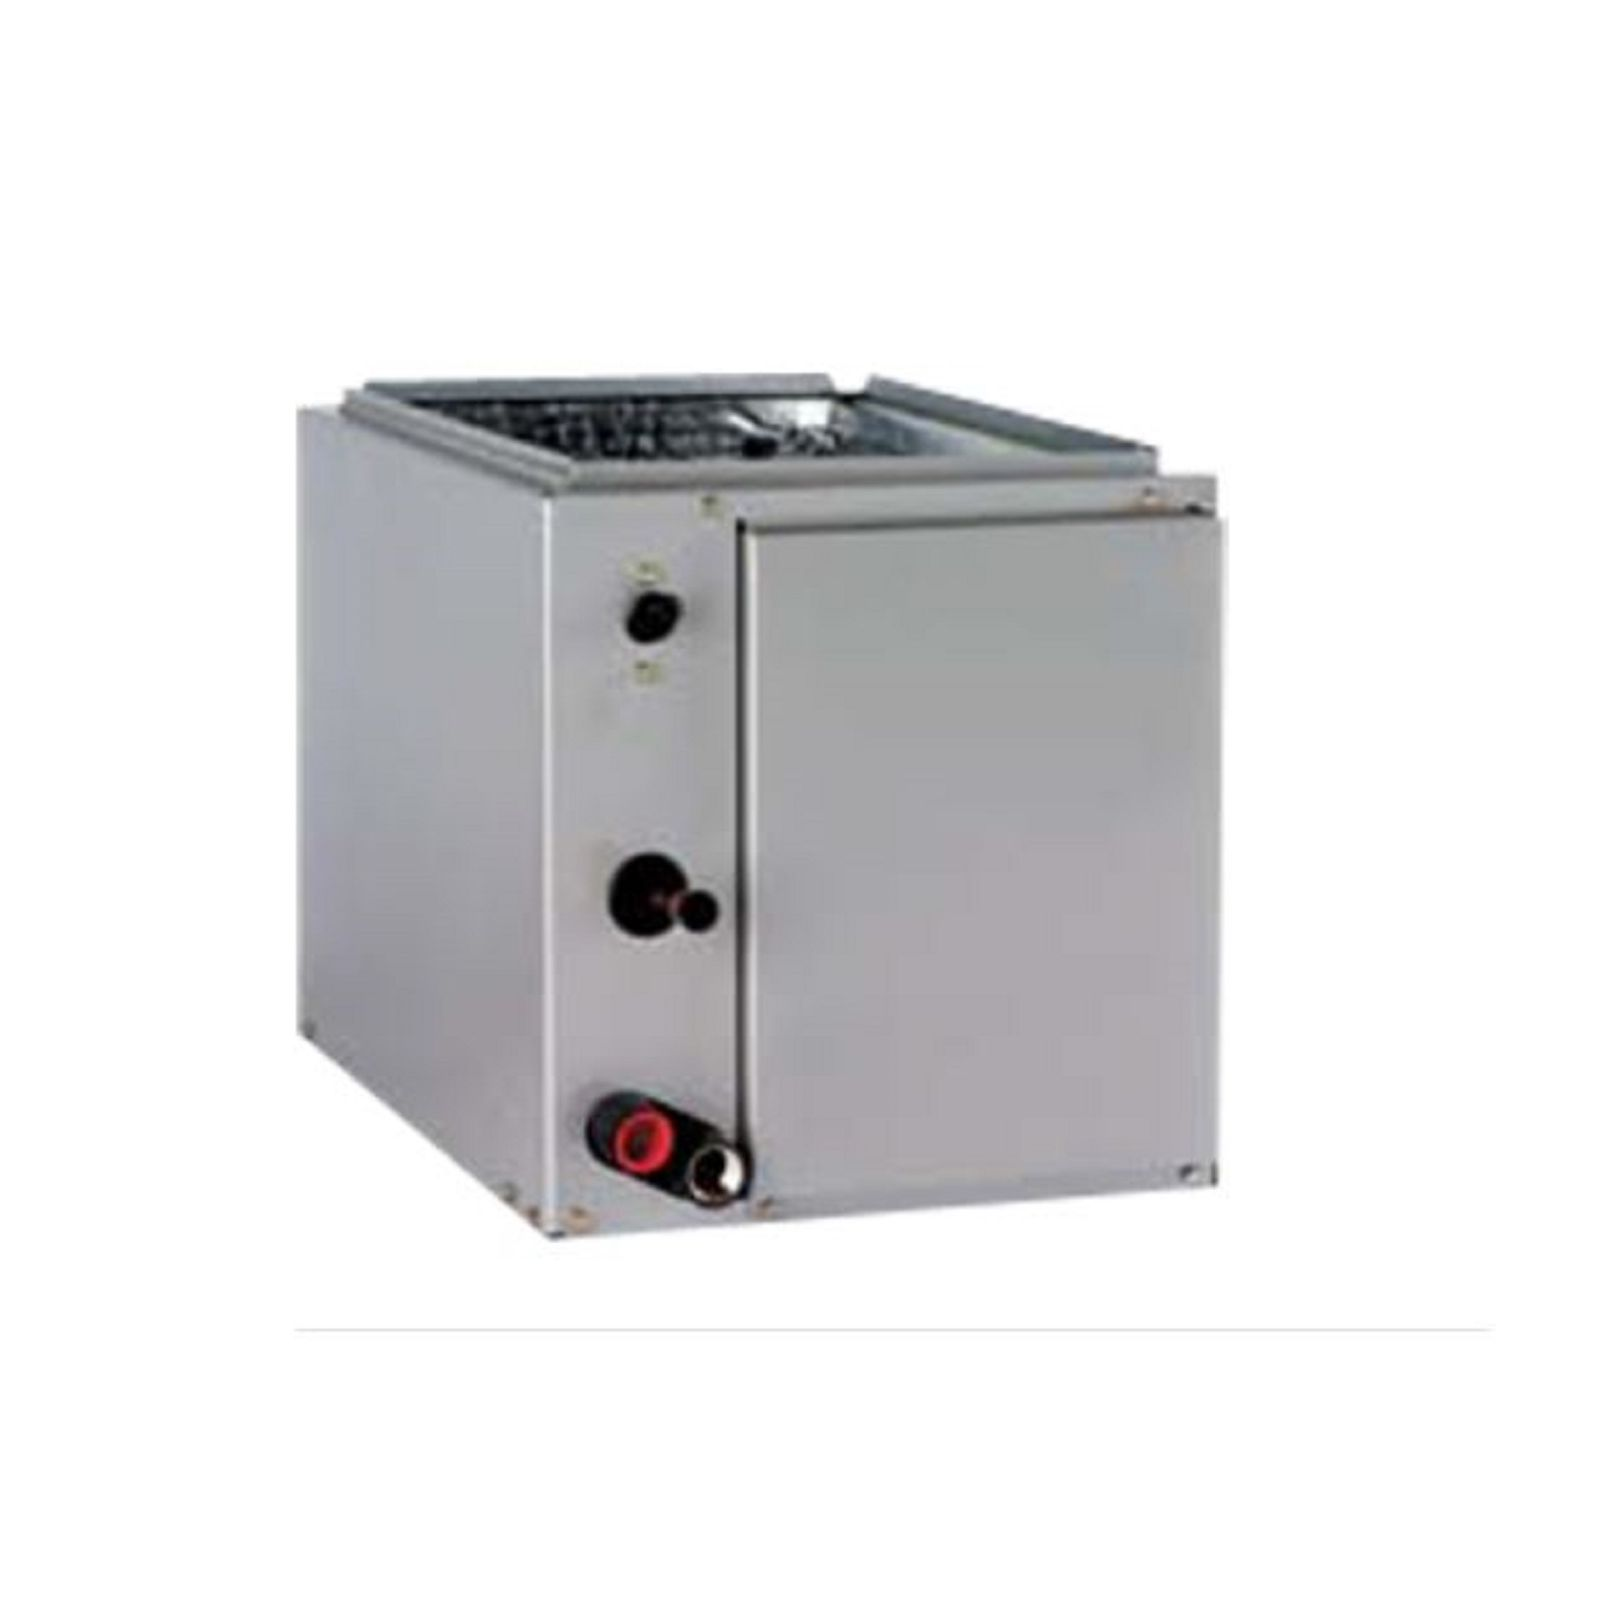 "Tempstar END4X42L17A - 3 1/2 Ton, R410A, Cased Up/Down Flow, N Type Evaporator Coil, With TXV, 17.5"" Wide"